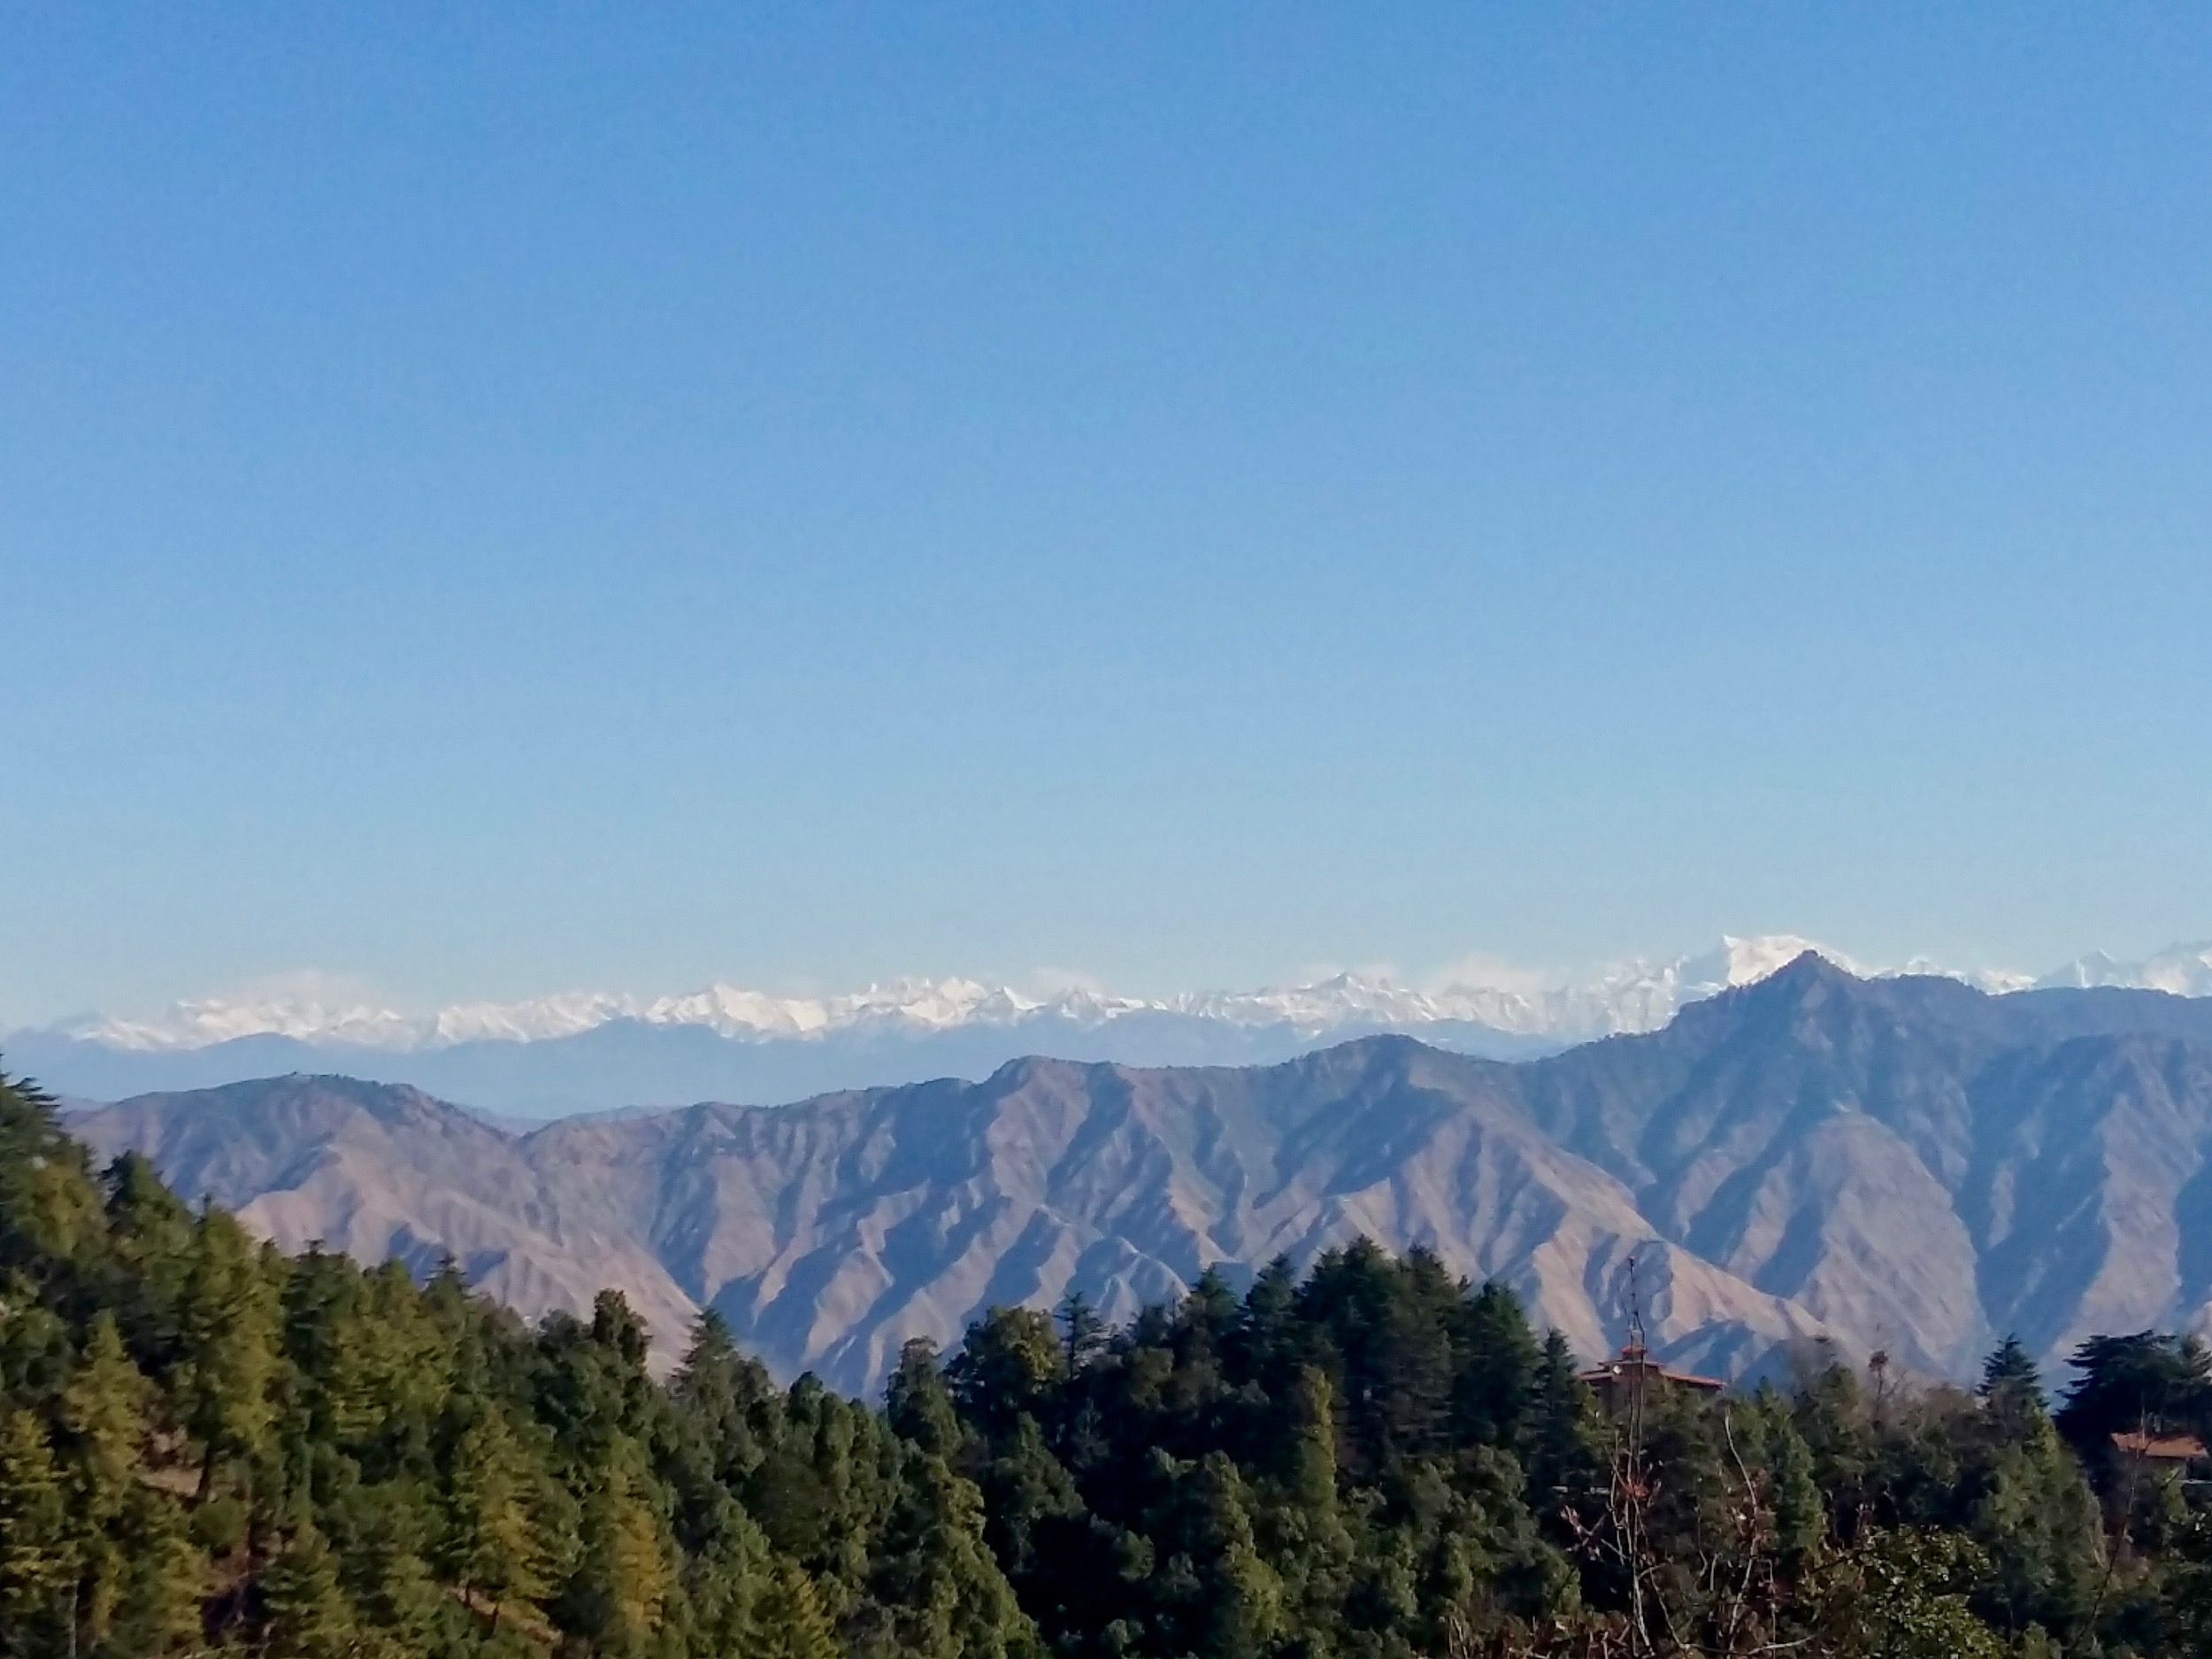 Garhwal Himalayas including Bandarpunch massif and Gangotri group, visible from George Everest House, Mussoorie.